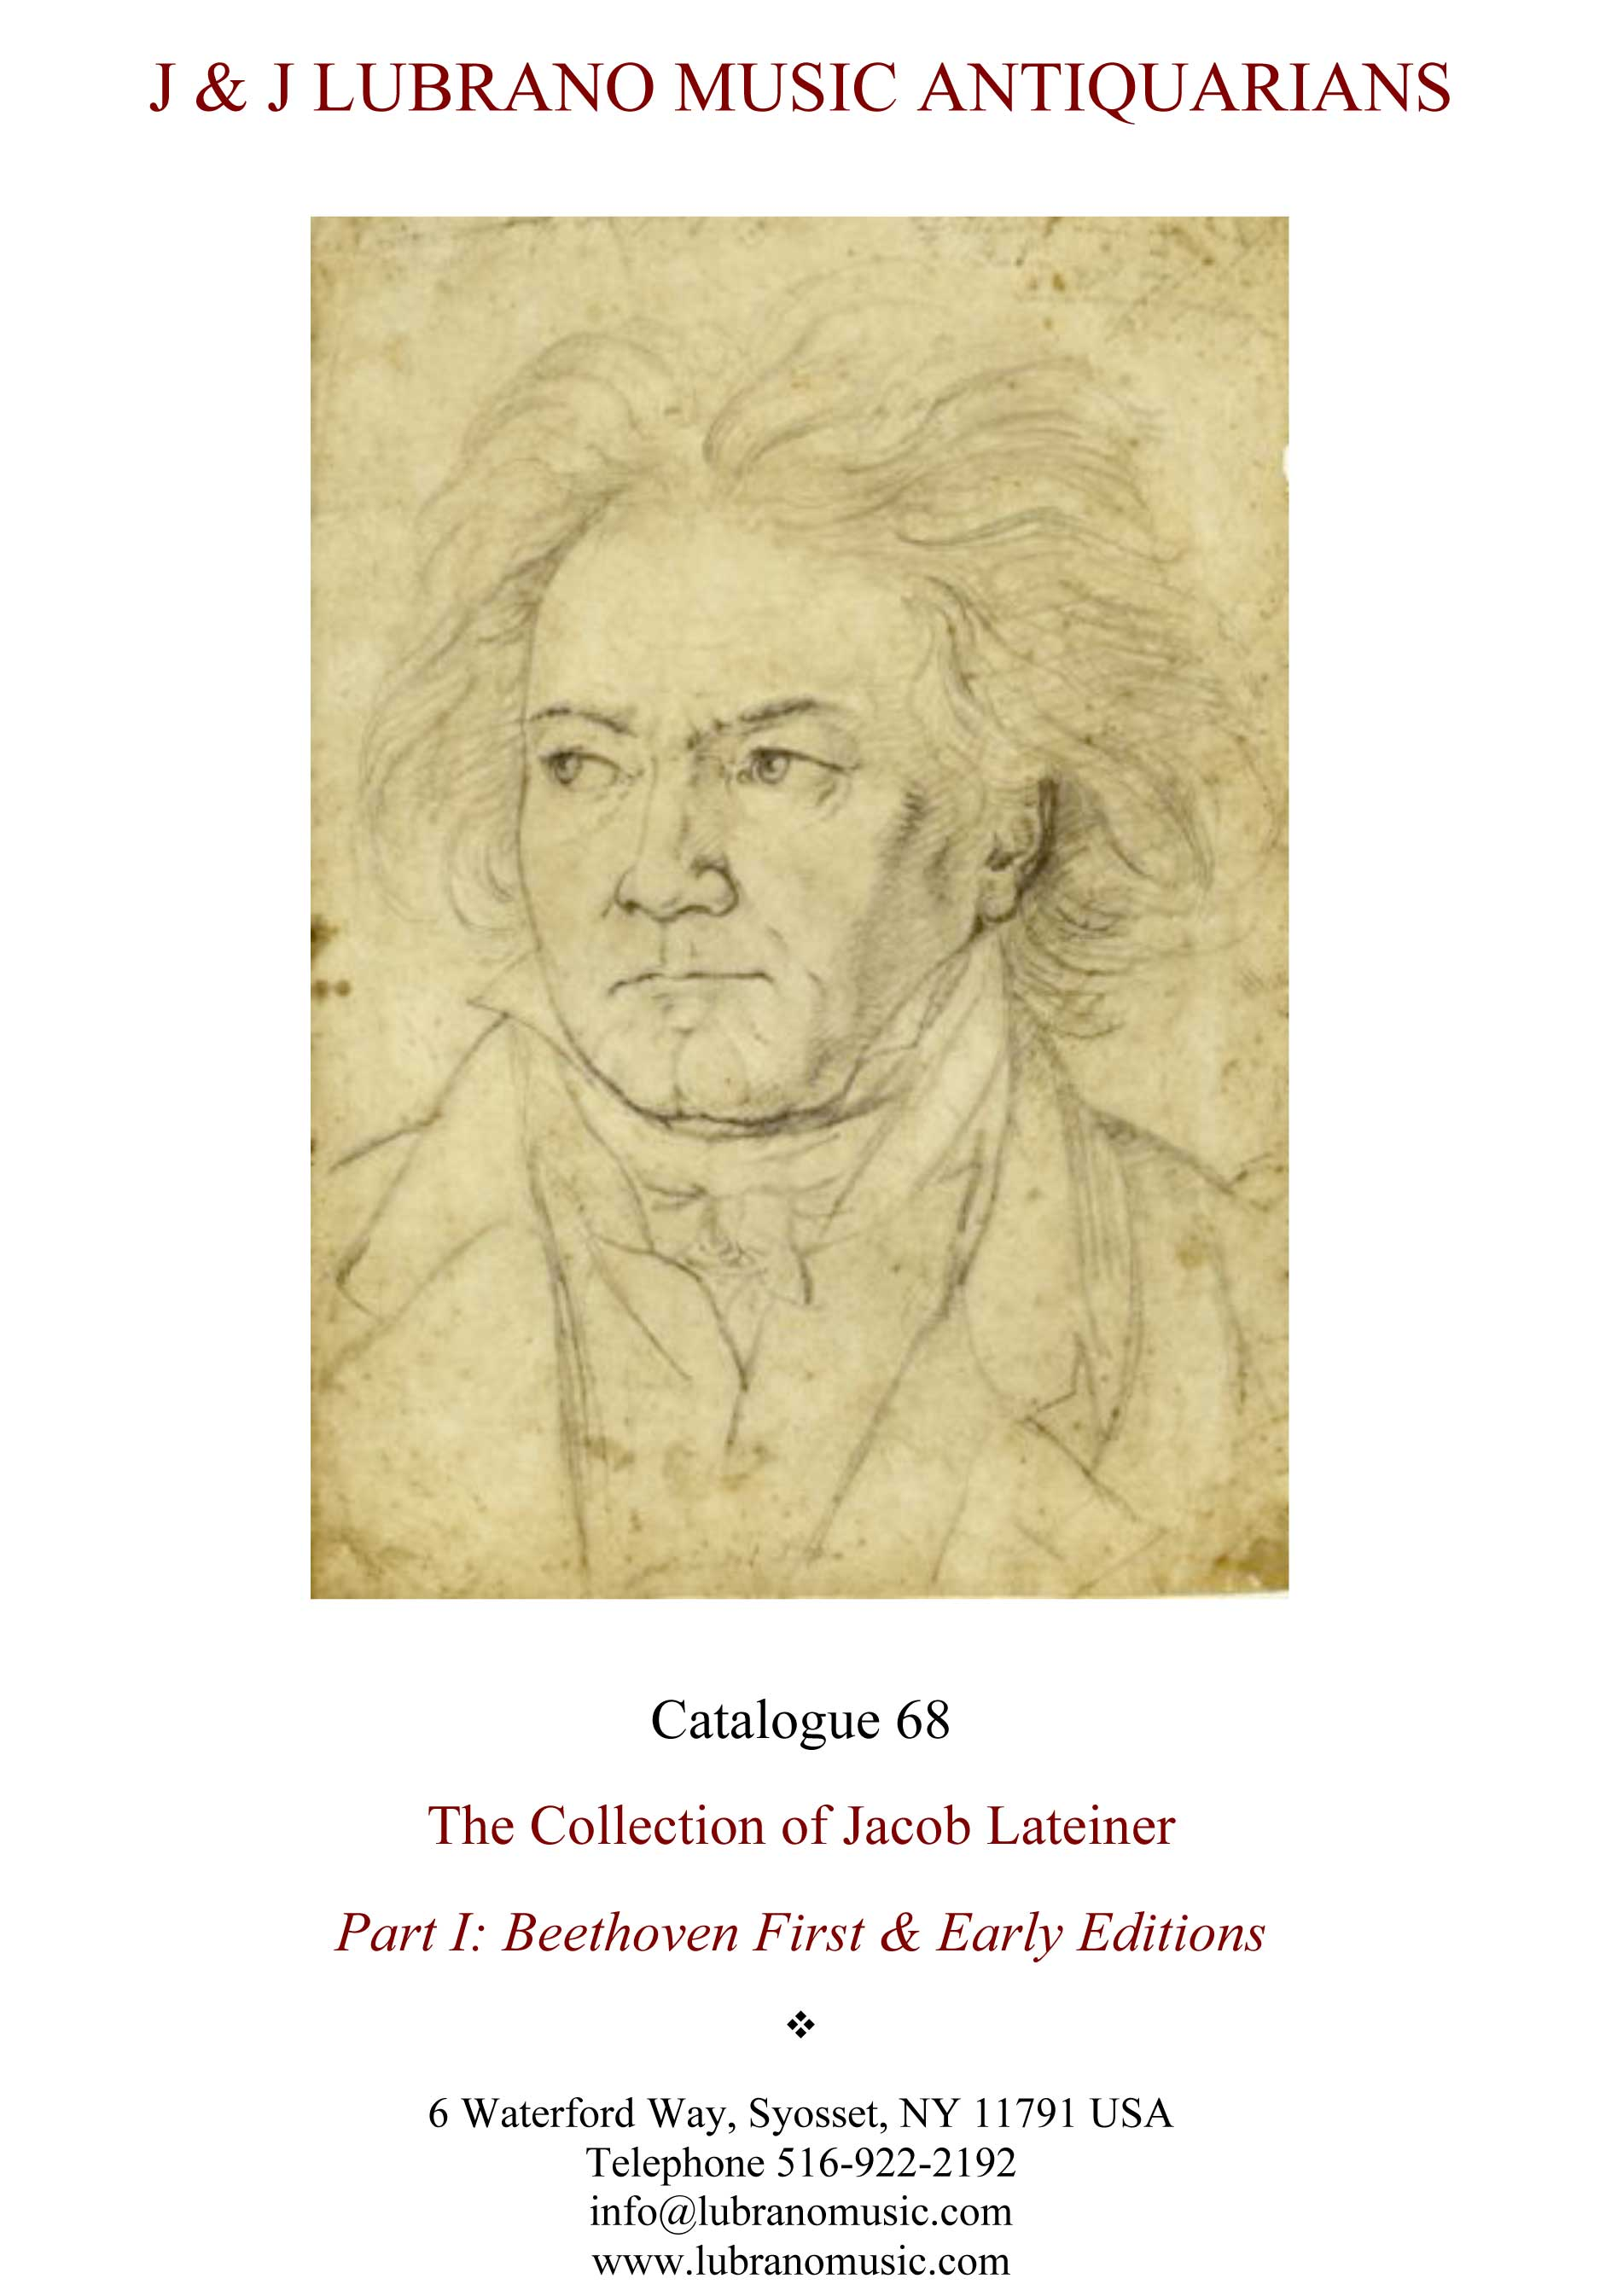 THE COLLECTION OF JACOB LATEINER - PART I